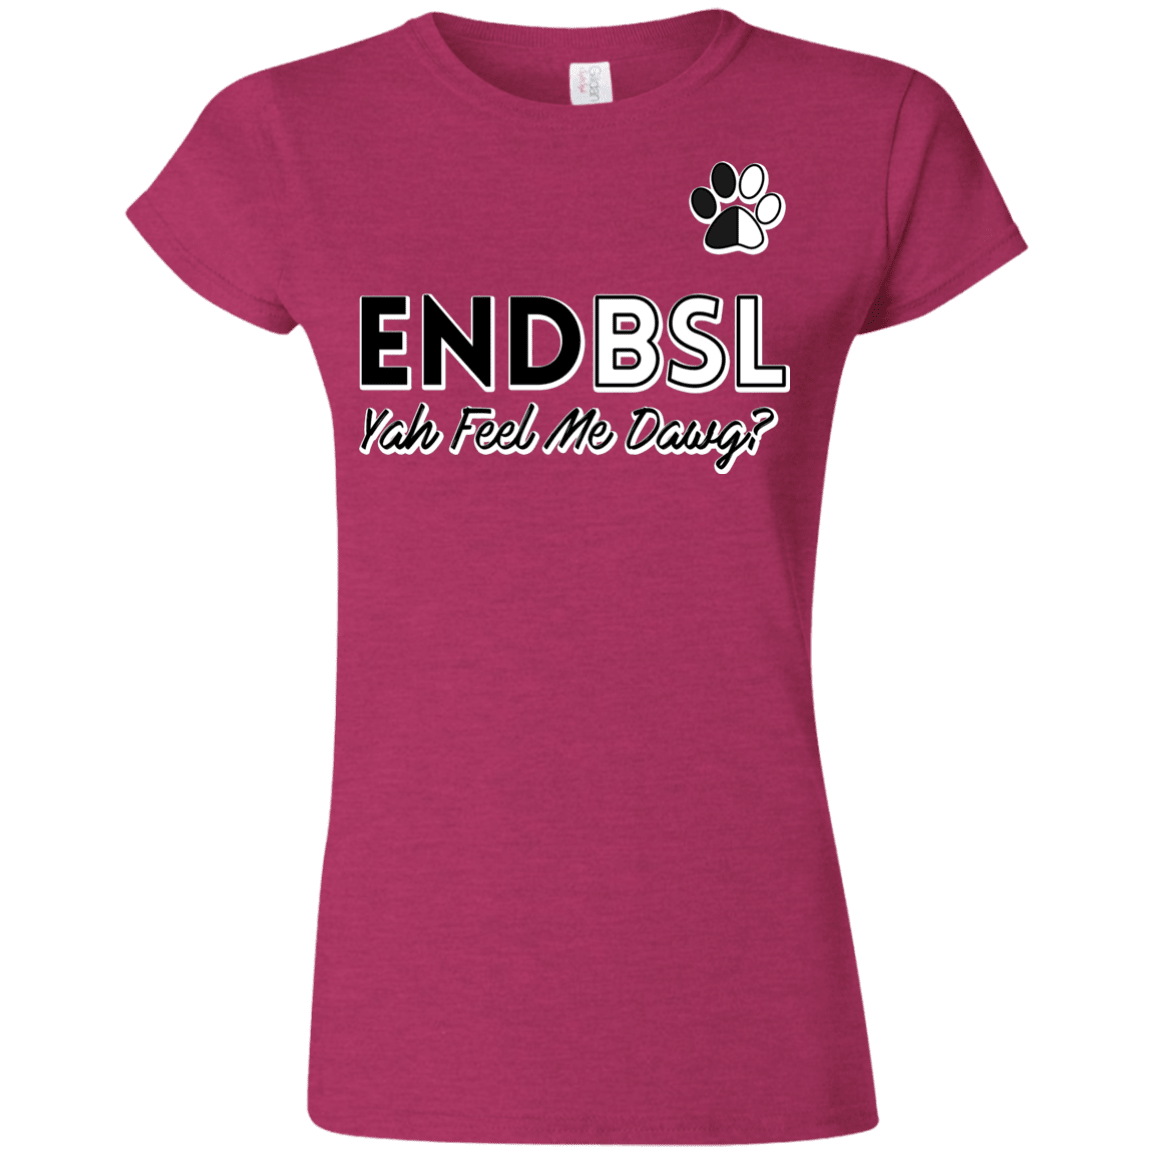 End BSL - G640L Gildan Softstyle Ladies' T-Shirt Antique Heliconia Small - Little Pit Shop